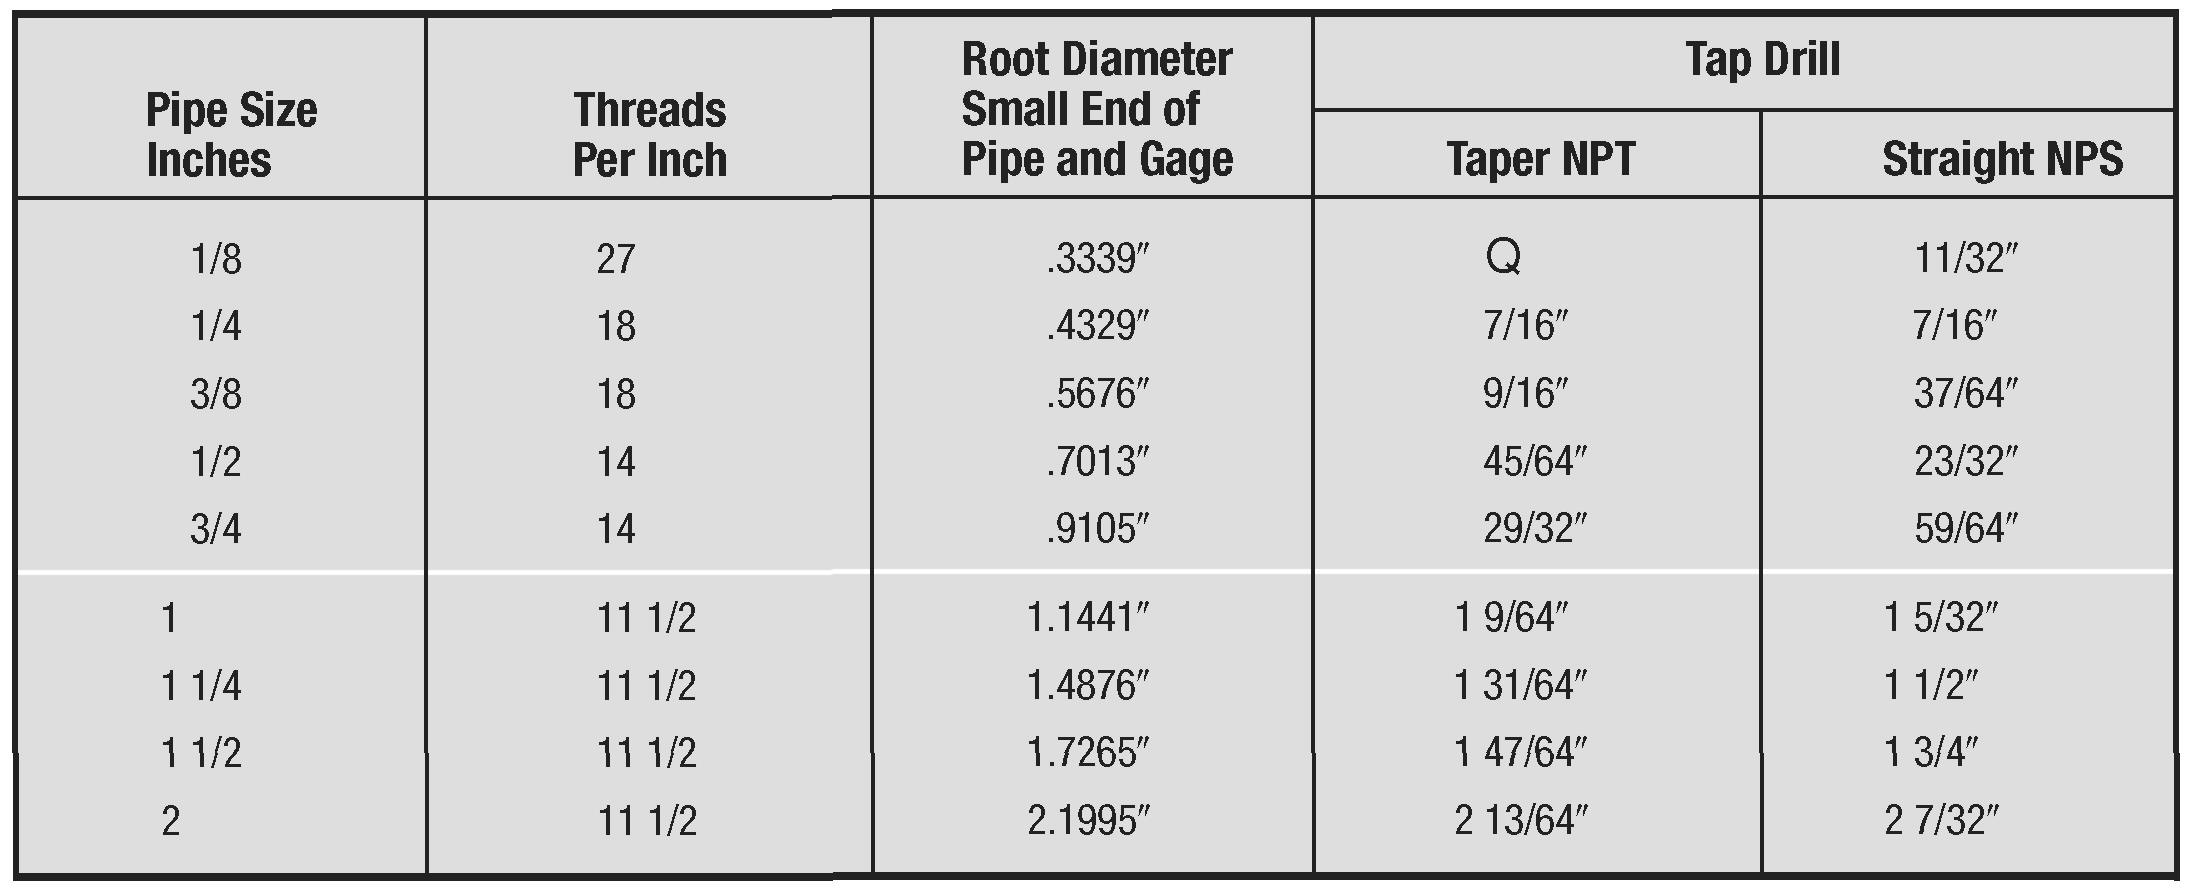 American Standard Pipe Thread And Tap Drill Sizes .